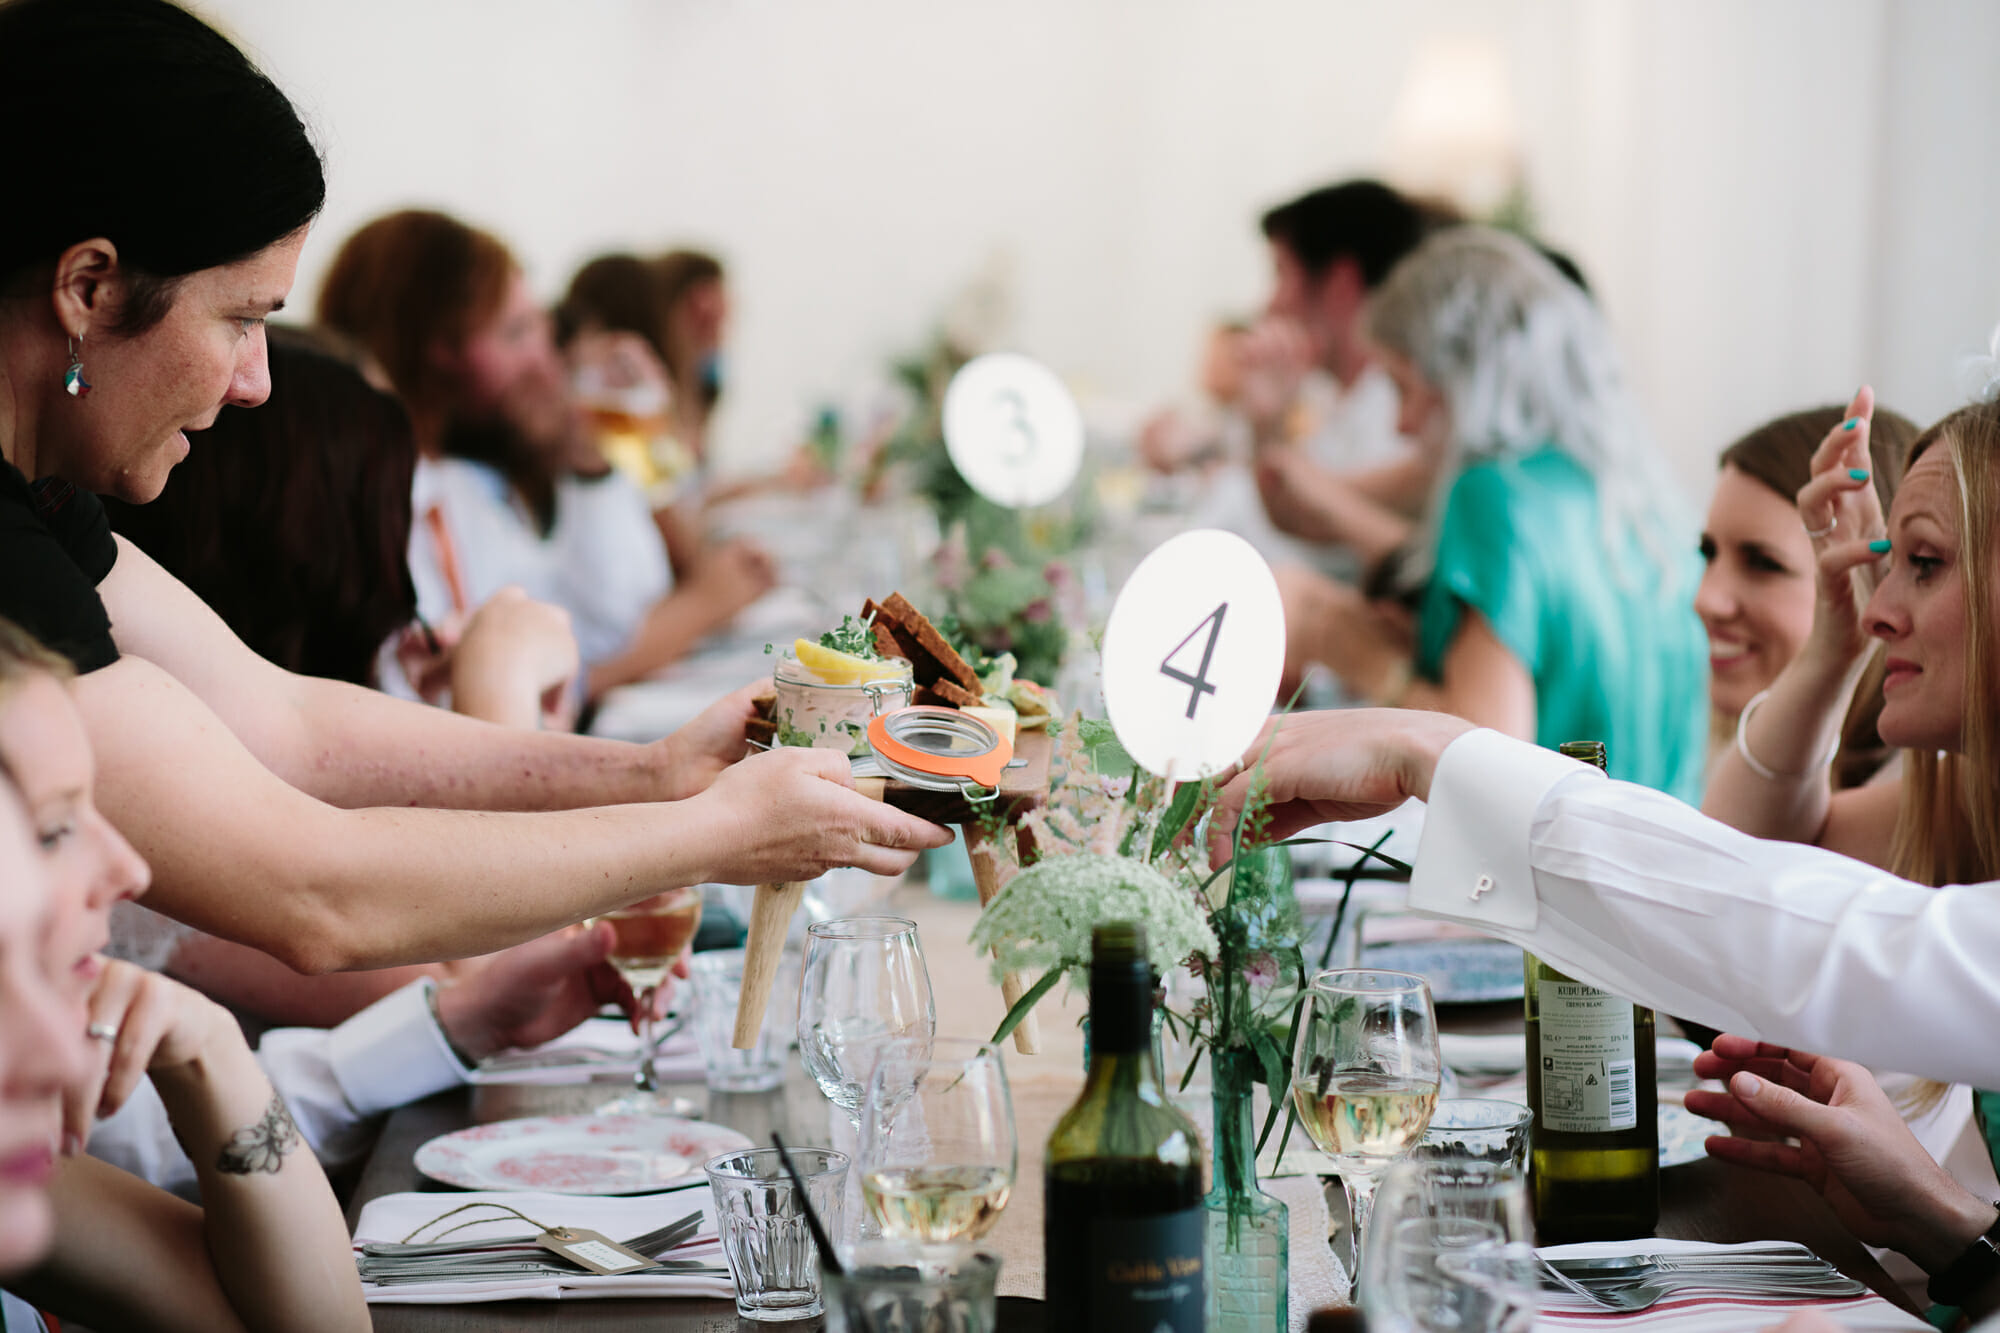 wedding day food | https://philippajamesphotography.com › five-things-for-the-perfect-wedding-day